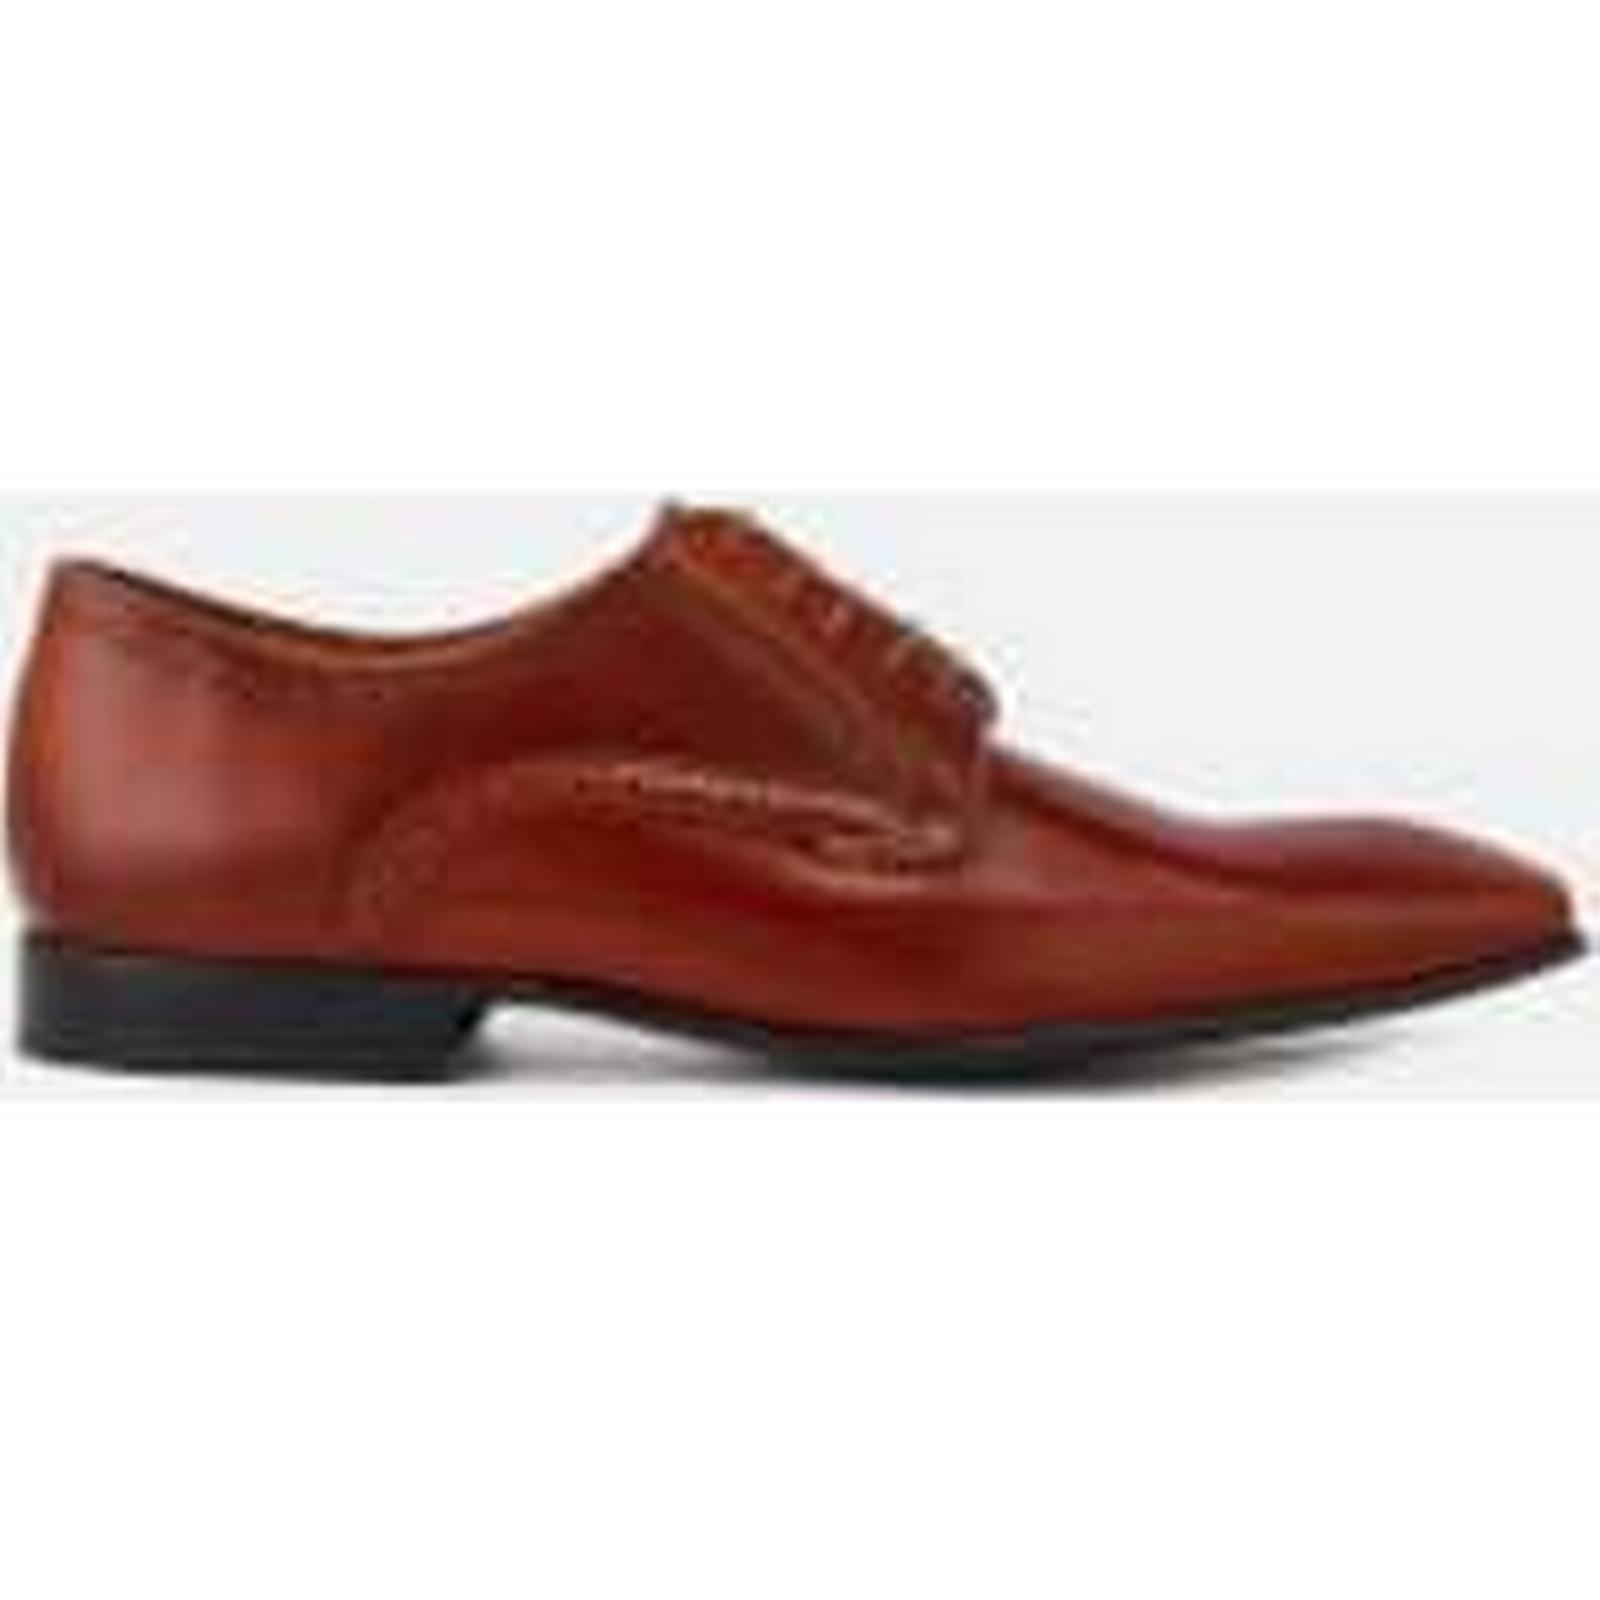 PS by Paul Almond Smith Men's Roth Leather Almond Paul Toe Derby Shoes - Tan 00f006